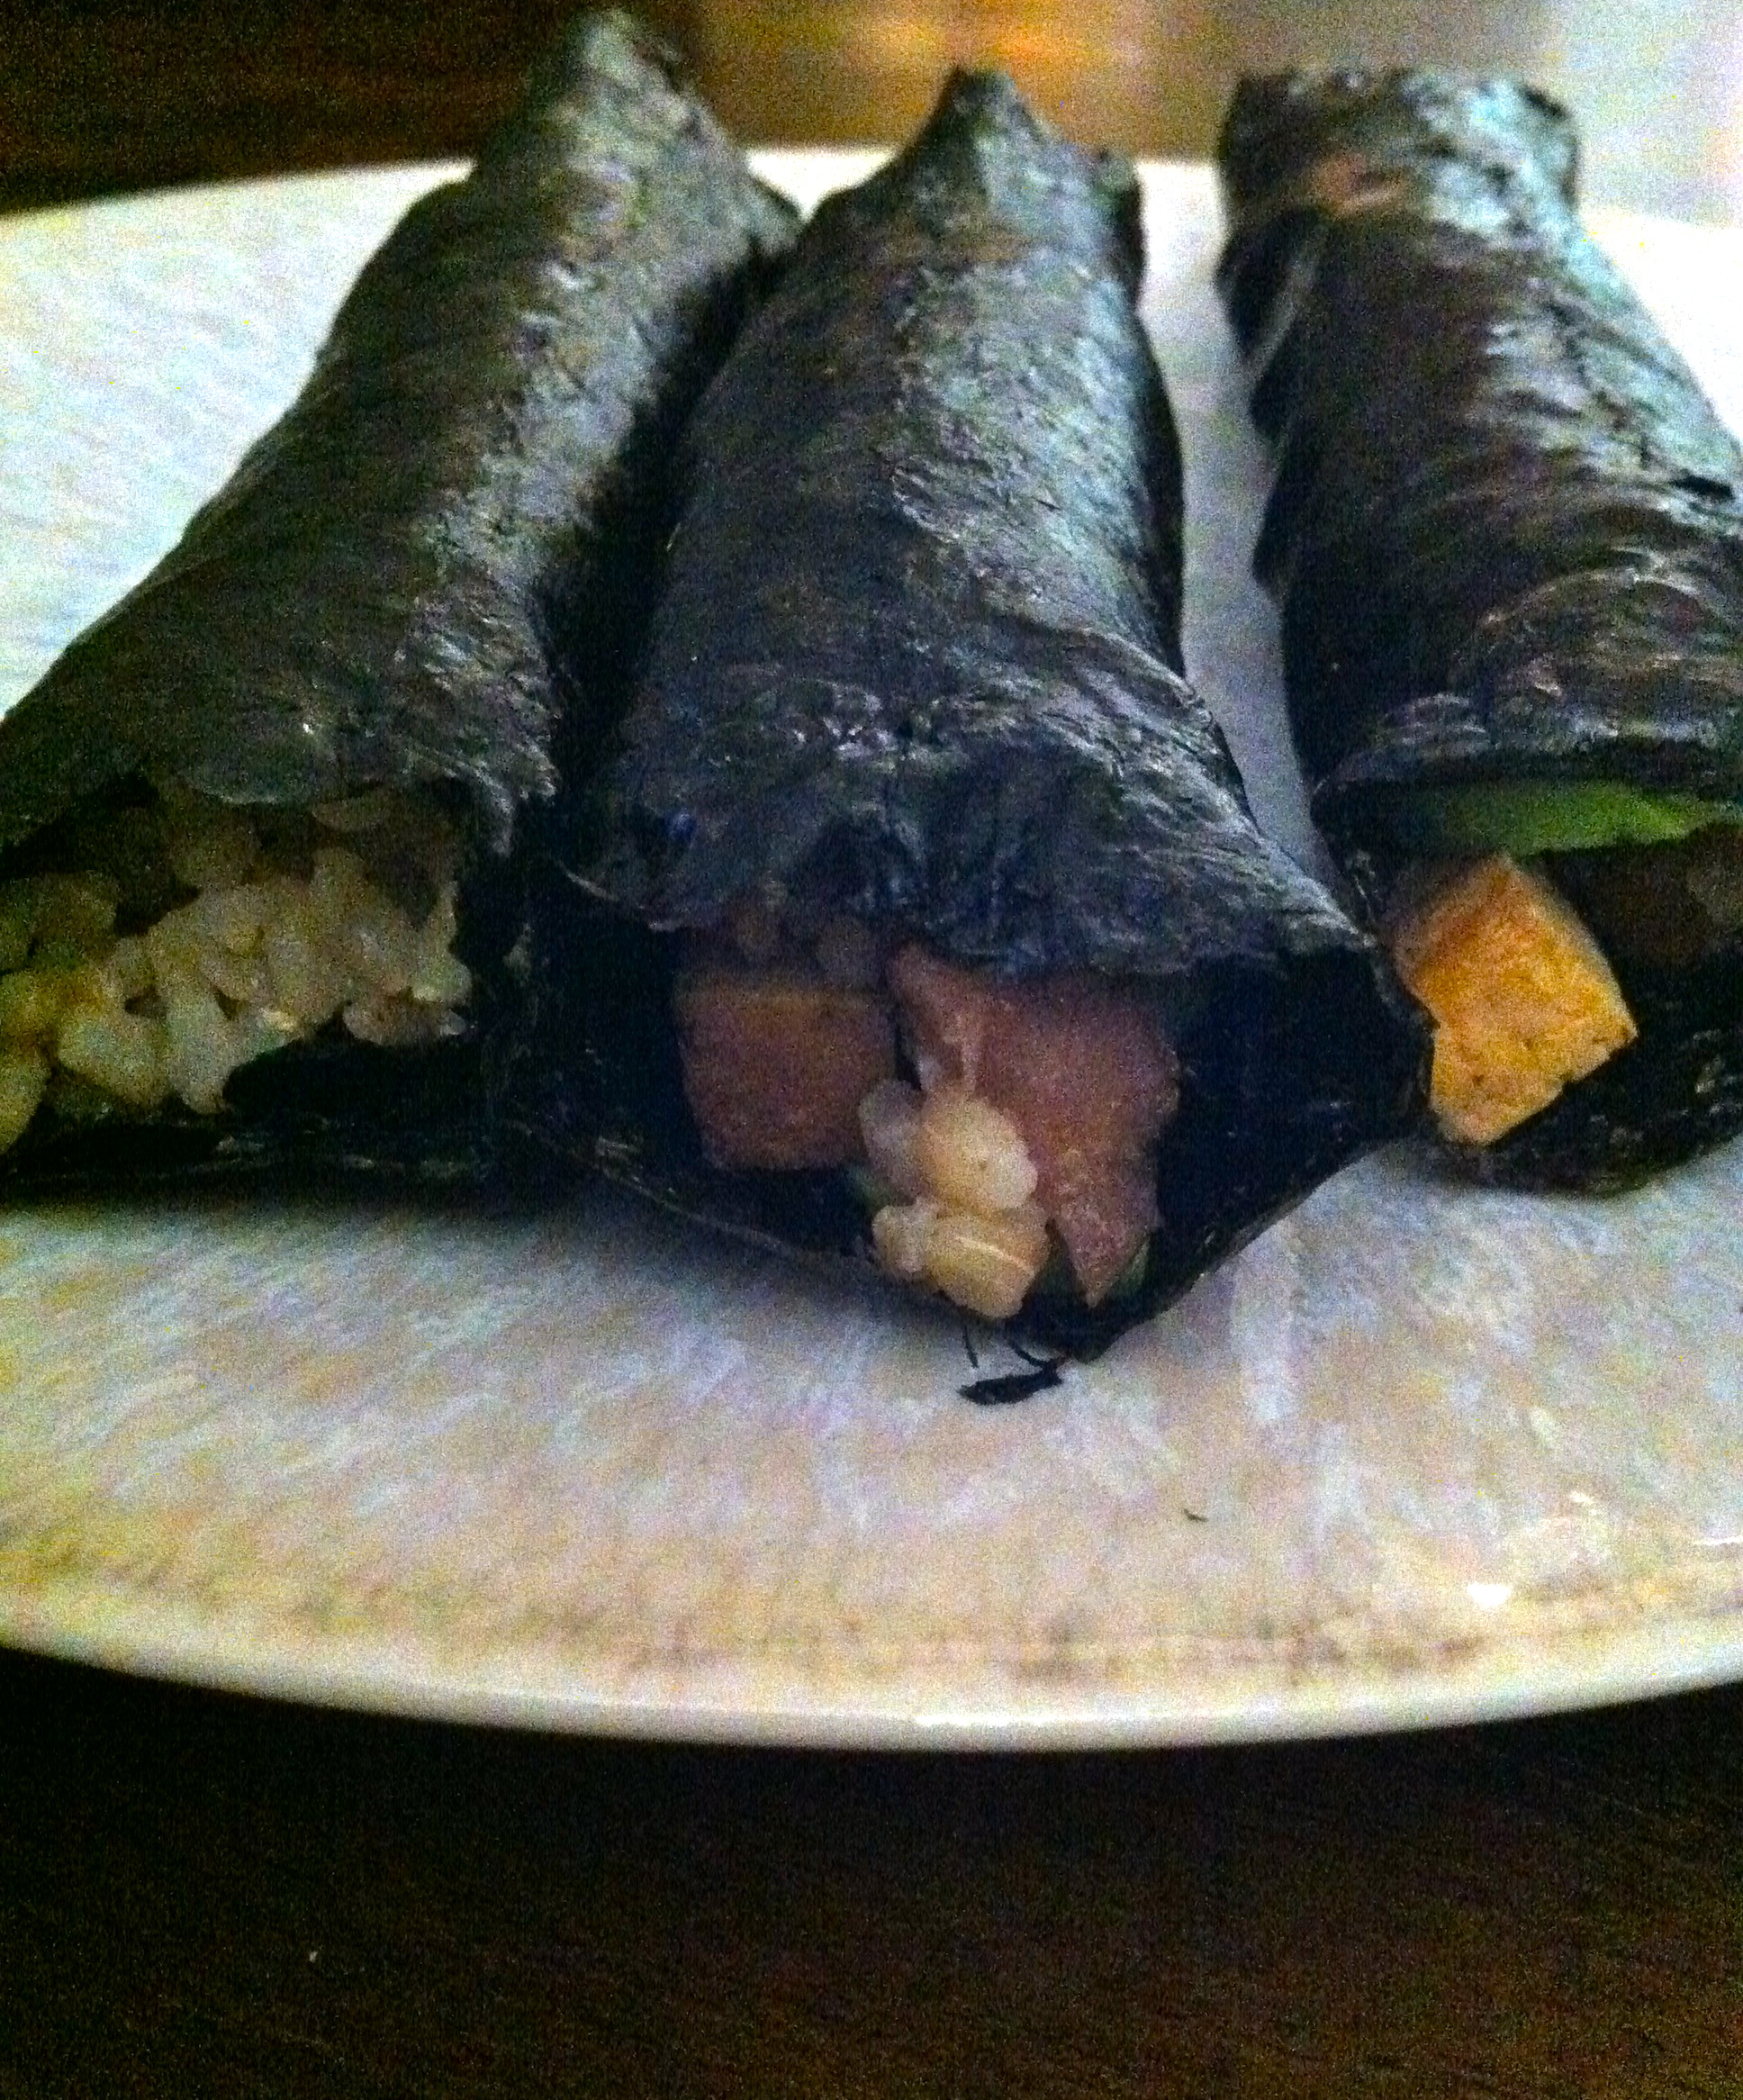 These nori rolls are filled with avocado and tofu and brown rice and chestnuts!